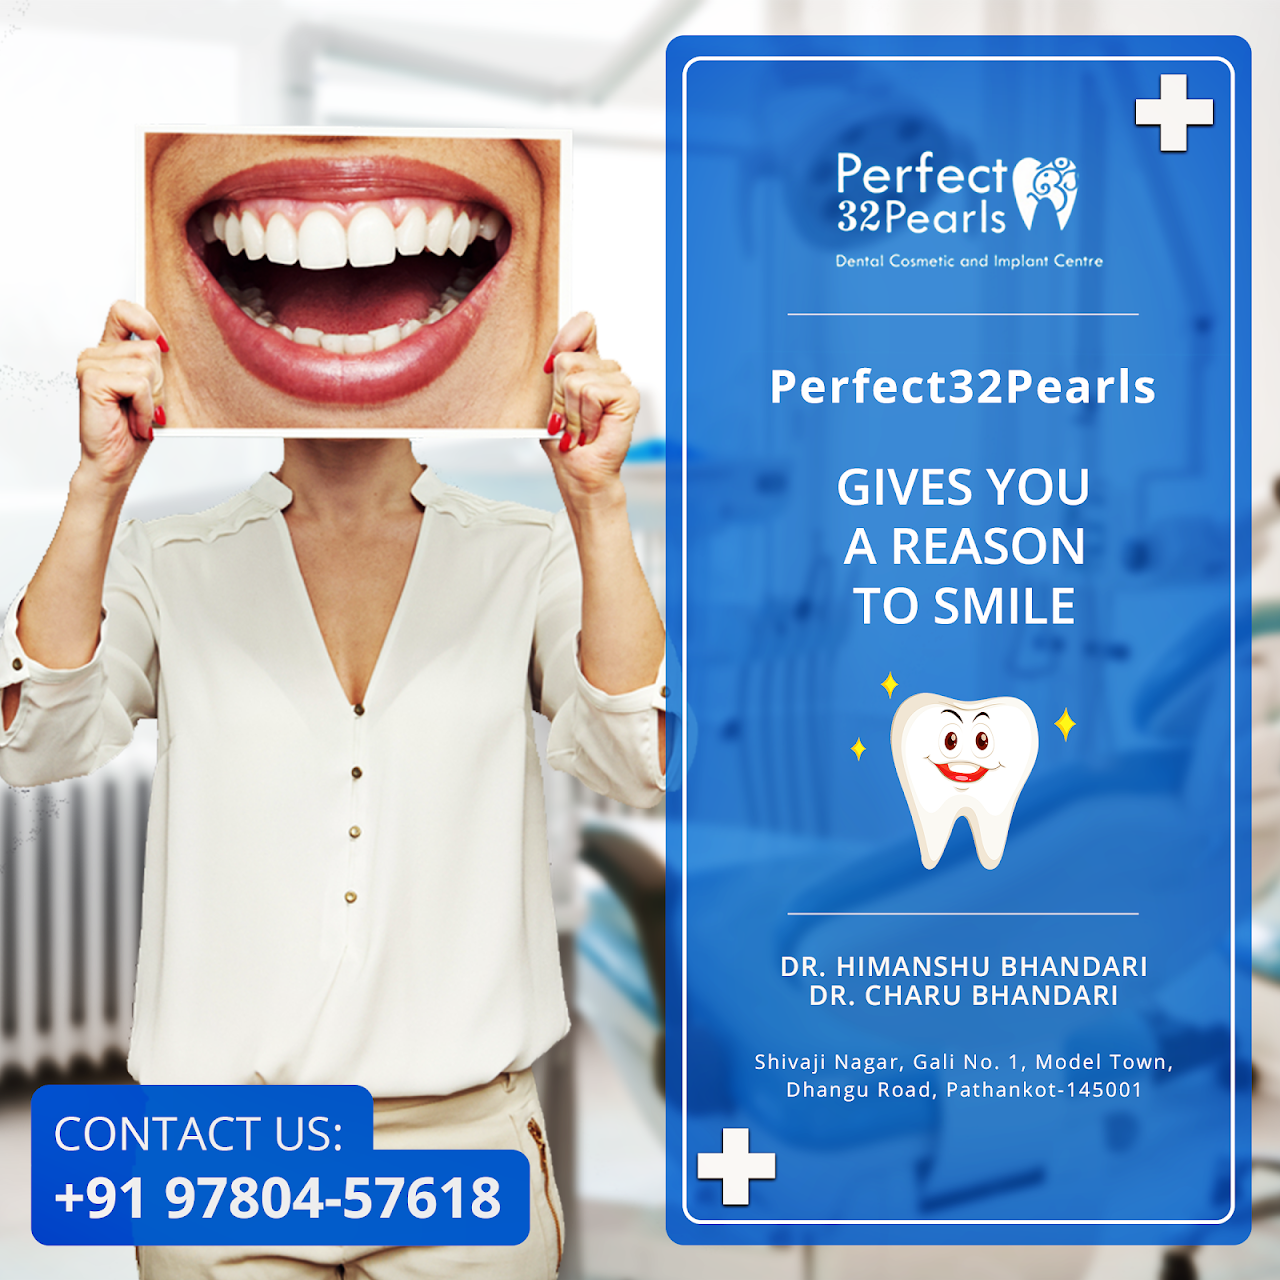 Perfect 32 Pearls Dental Clinic and Implant Centre-Dental clinic